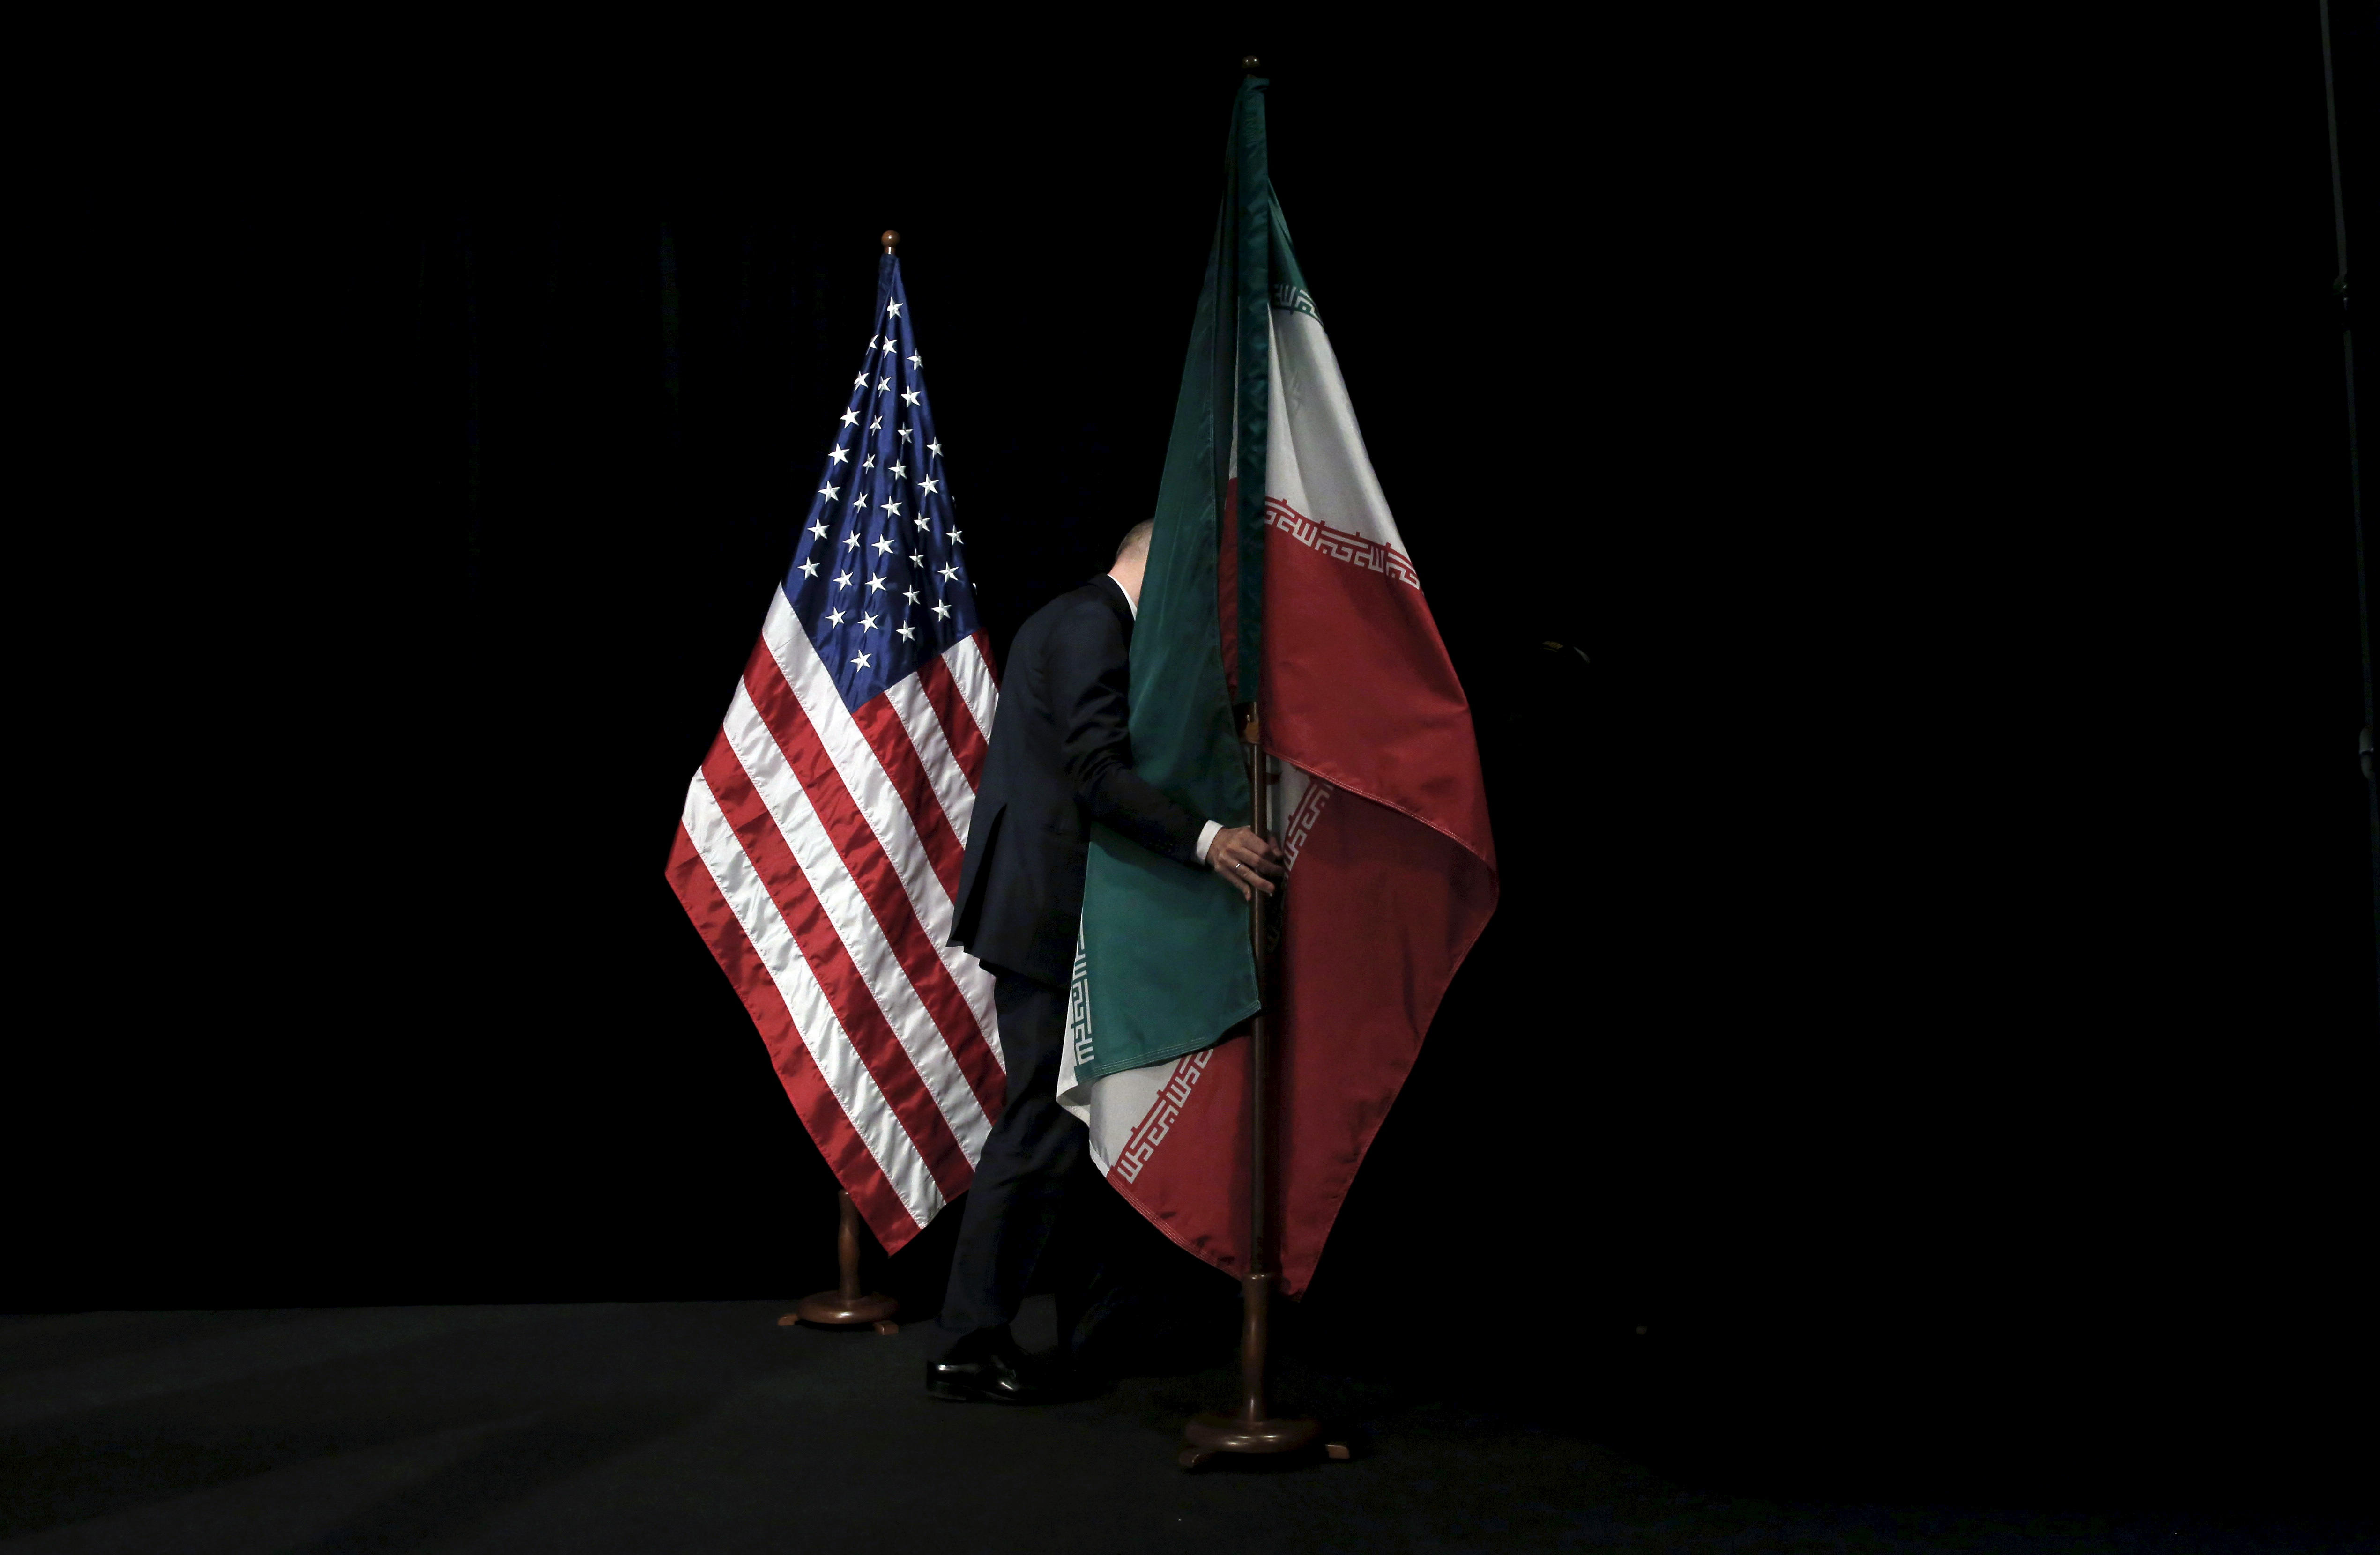 A staff member removes the Iranian flag from the stage after a group picture with foreign ministers and representatives of Unites States, Iran, China, Russia, Britain, Germany, France and the European Union during the Iran nuclear talks at the Vienna International Center in Vienna, Austria